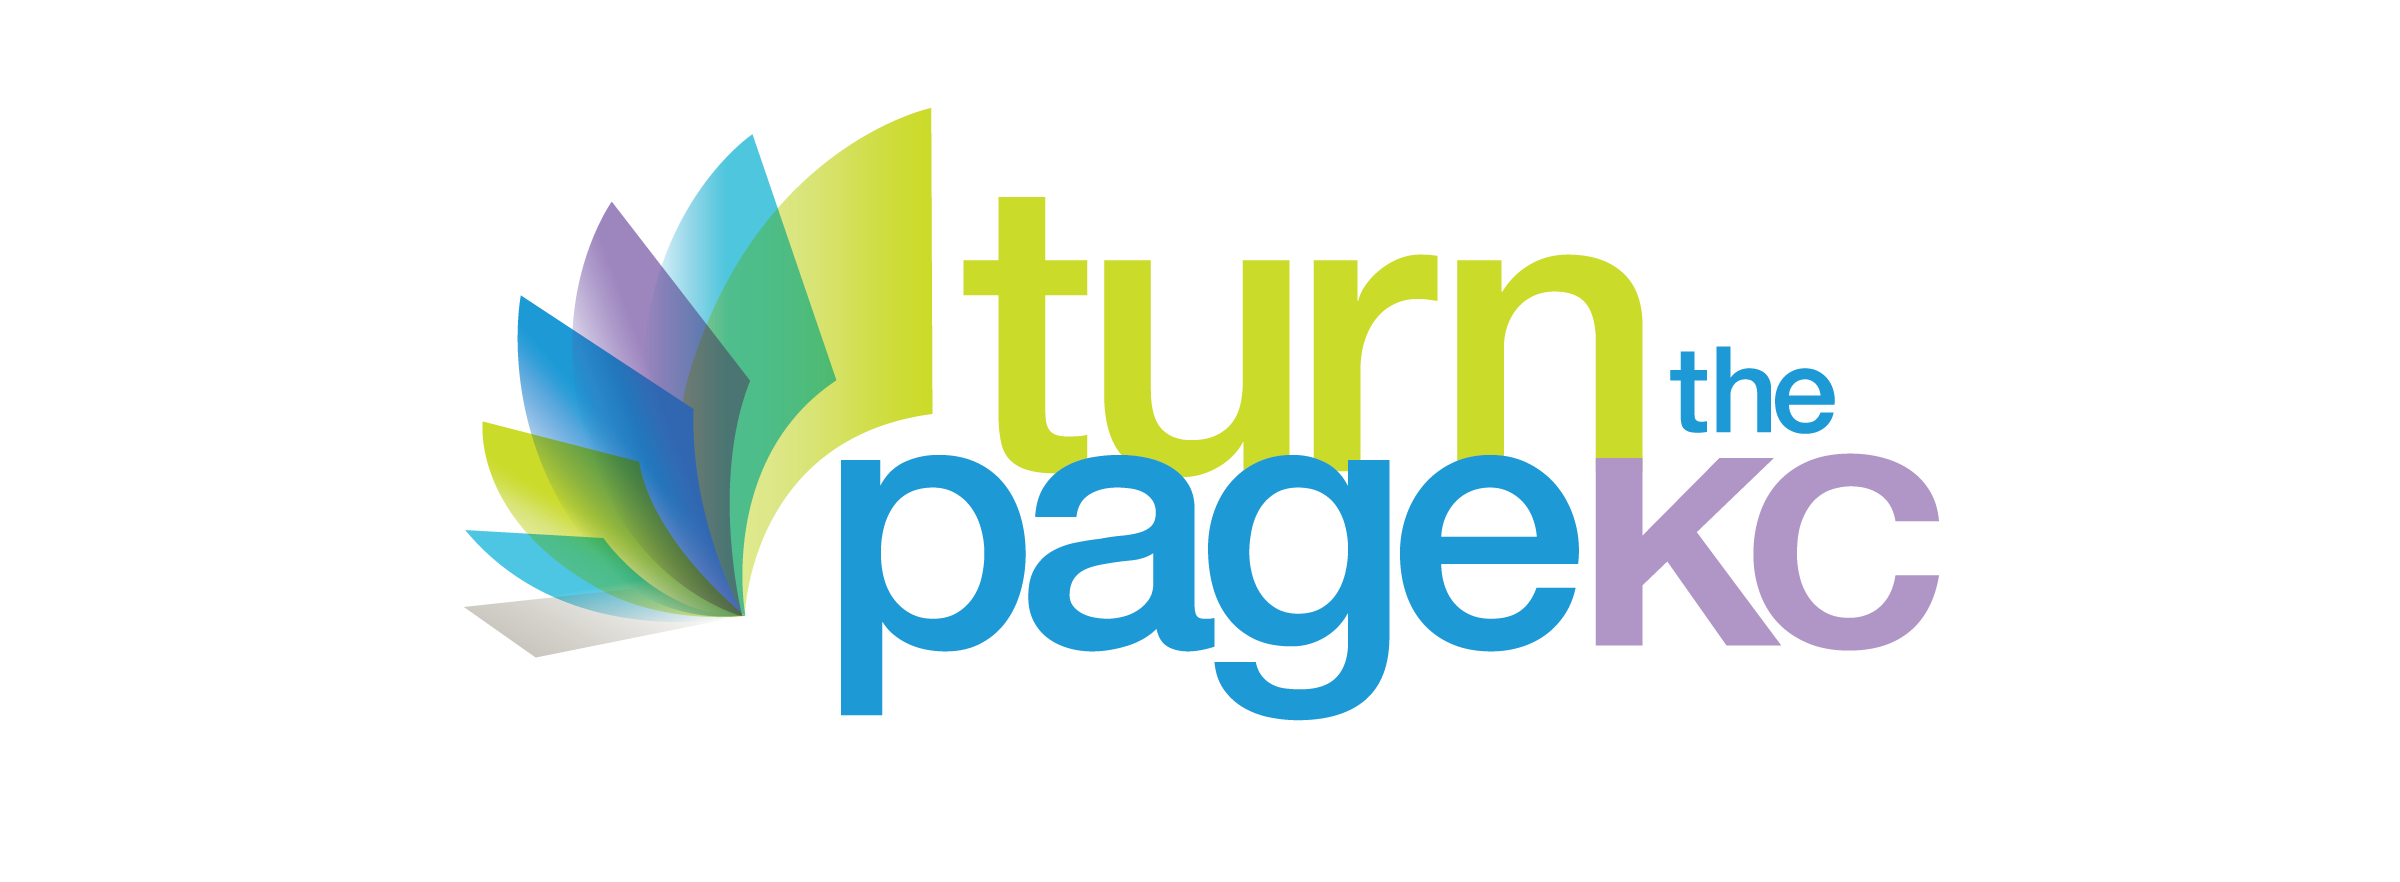 TURN-THE-PAGE-LOGO-USE-THIS-ONE.png